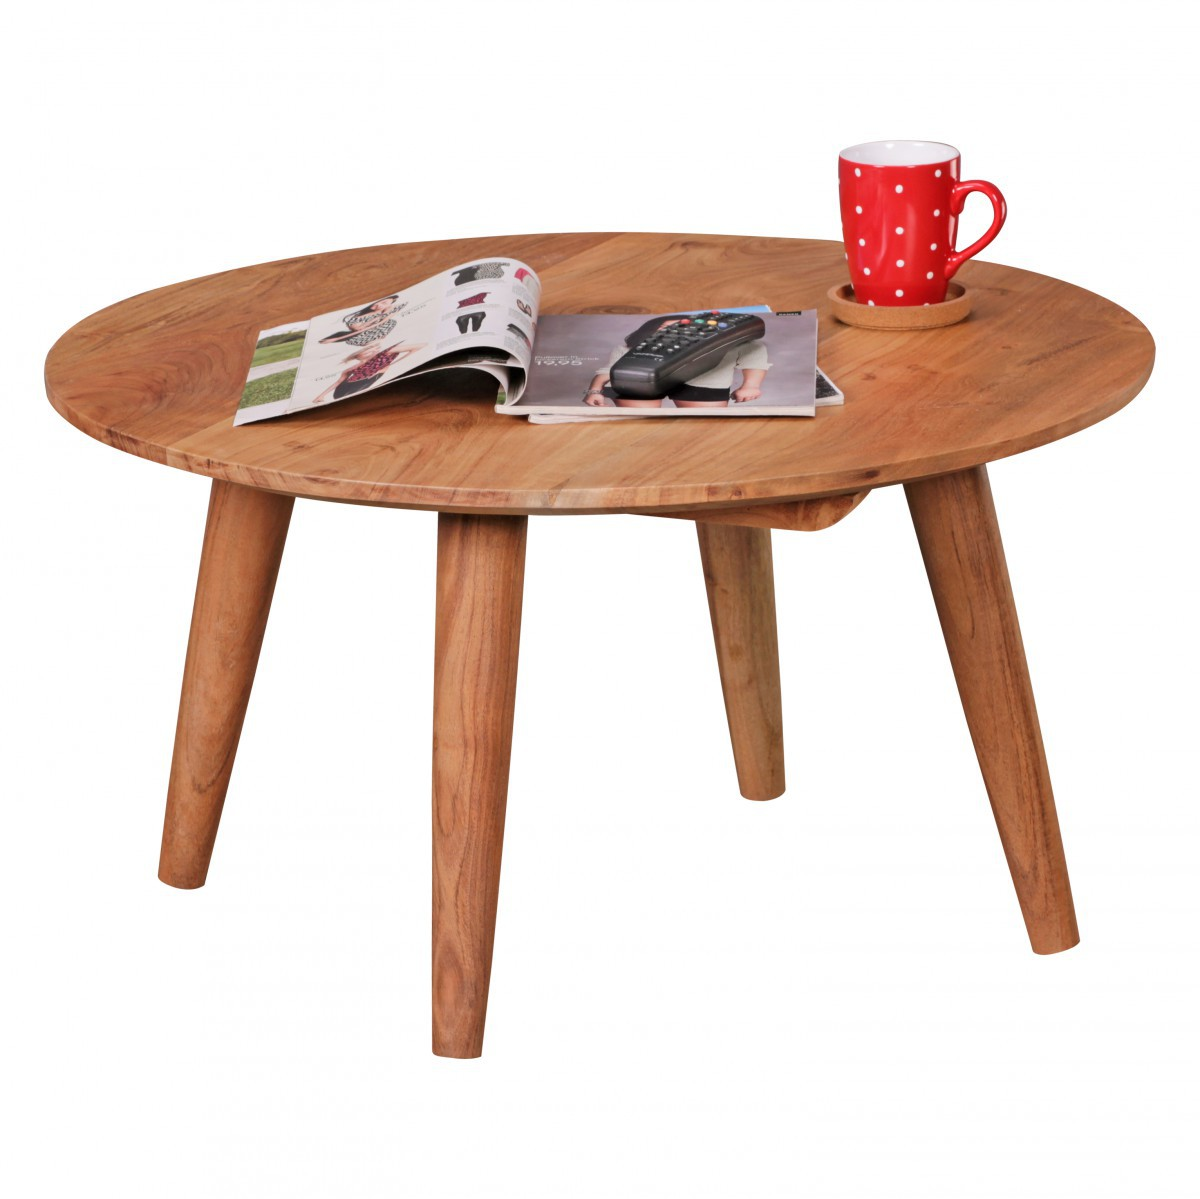 Finebuy table basse en bois massif acacia table basse ronde 75 x 40 cm ferme - Table ronde verre bois ...